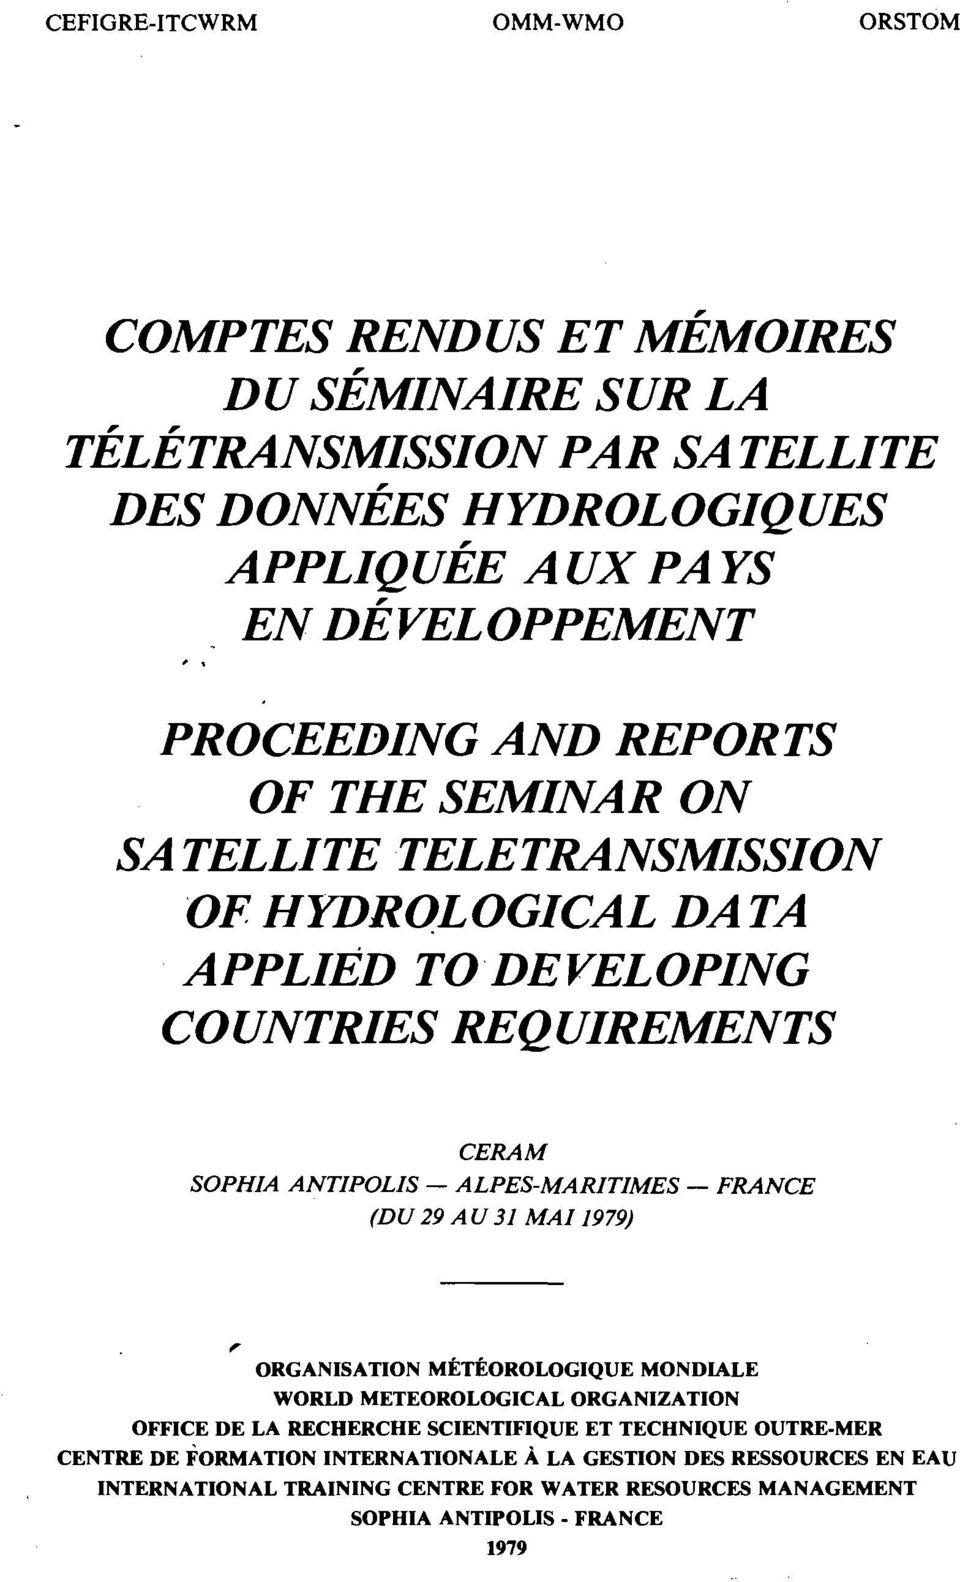 PROCEEDING AND REPORTS OF THE SEMINAR ON SATELLITE TELETRANSMISSION OF HYDROLOGICAL DATA APPLIED TODEVELOPING COUNTRIES REQUIREMENTS CERAM SOPHIA ANTIPOLIS -